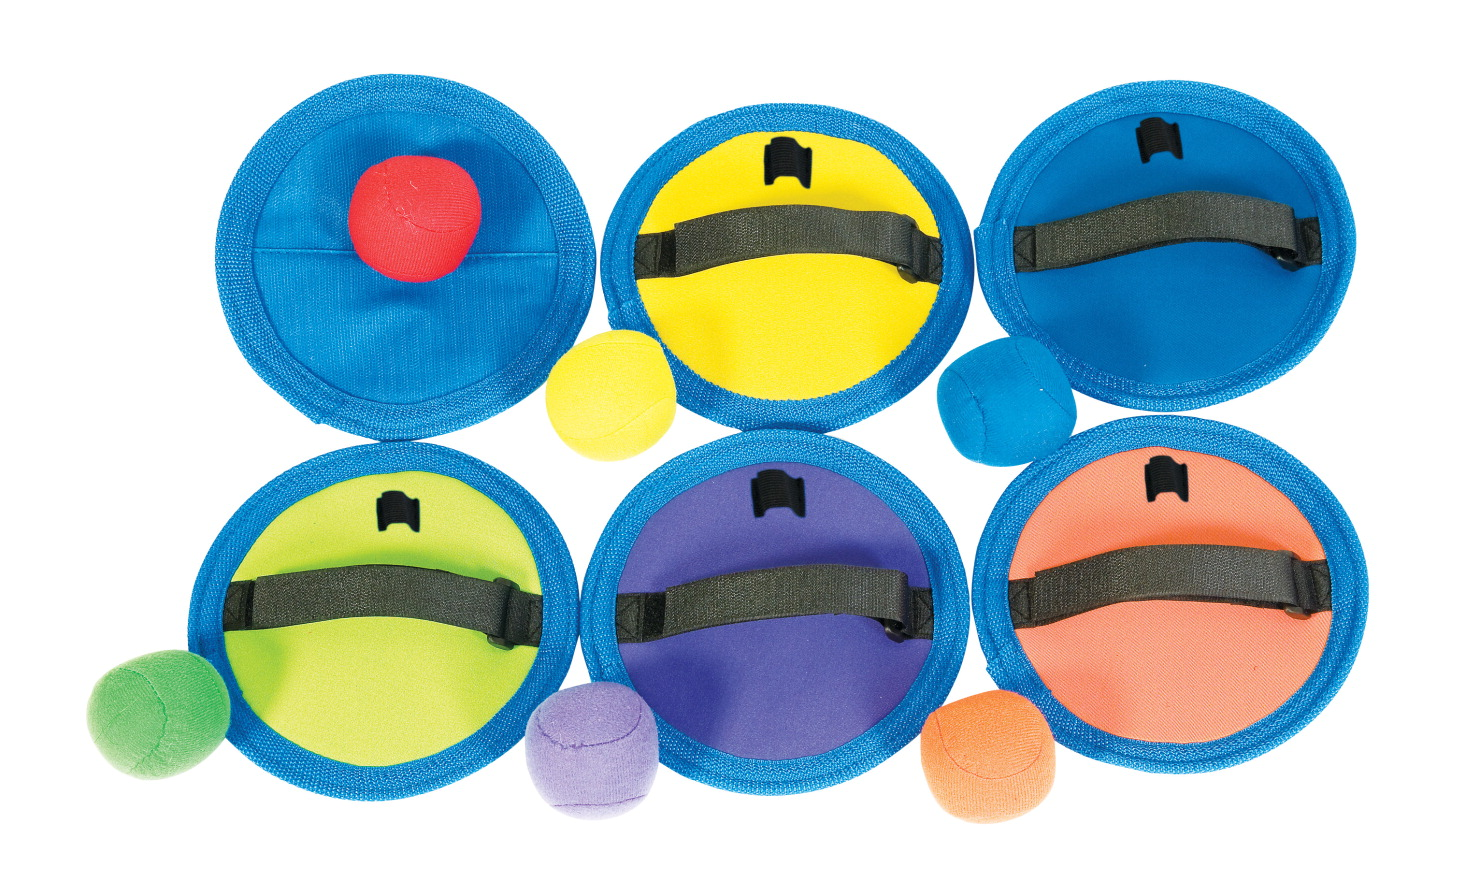 Sportime CatchPads and Balls, 7 Inches, Assorted Colors, Set of 6